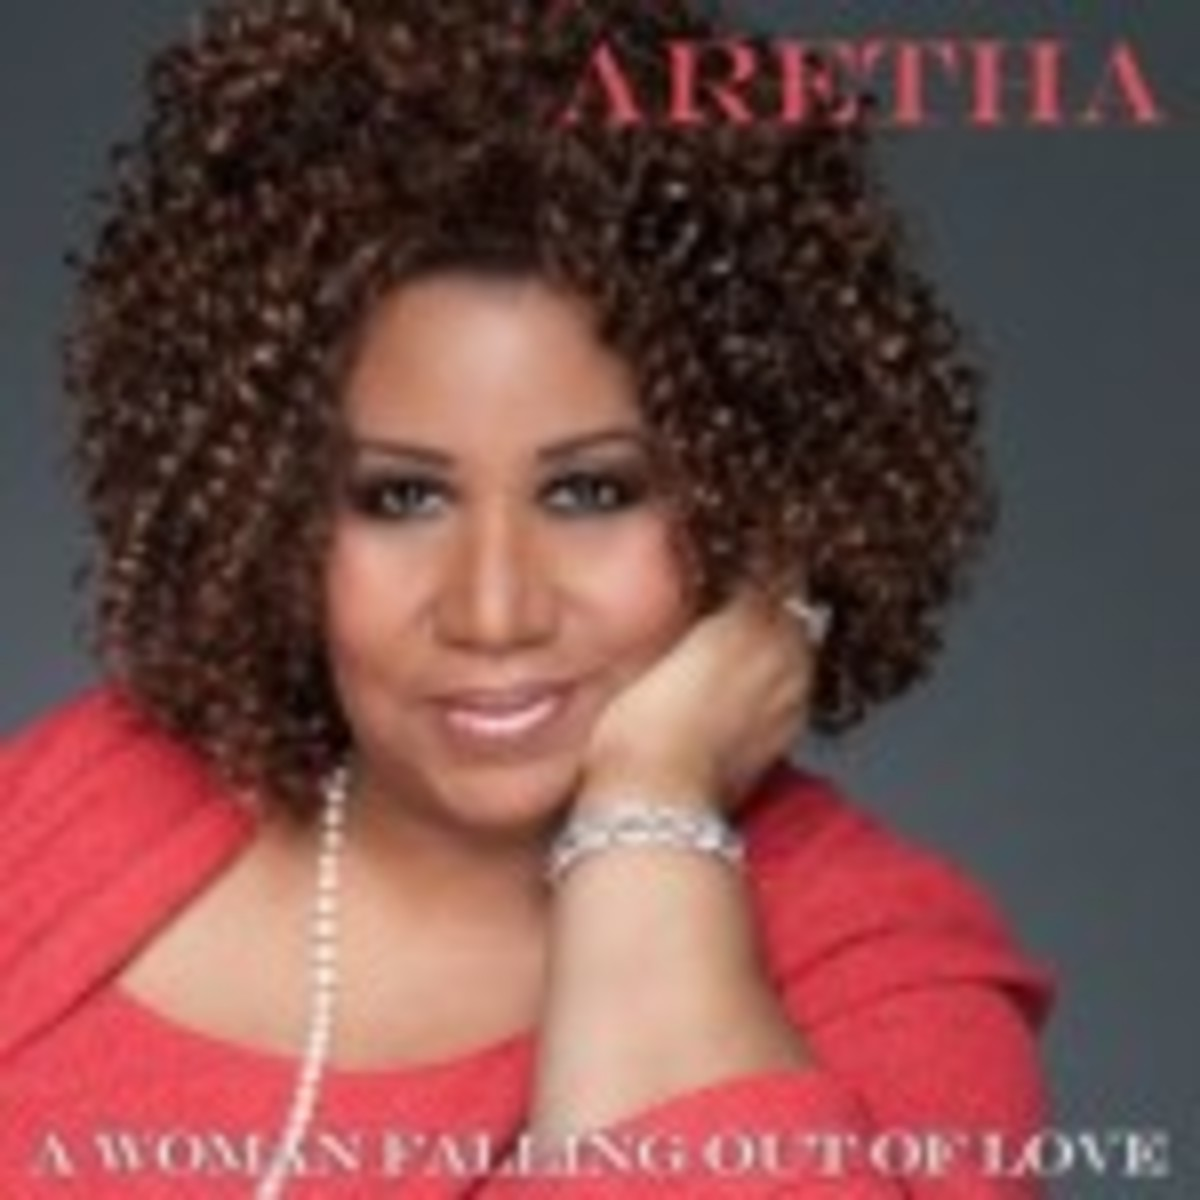 Aretha Franklin_A Woman Falling Out of Love